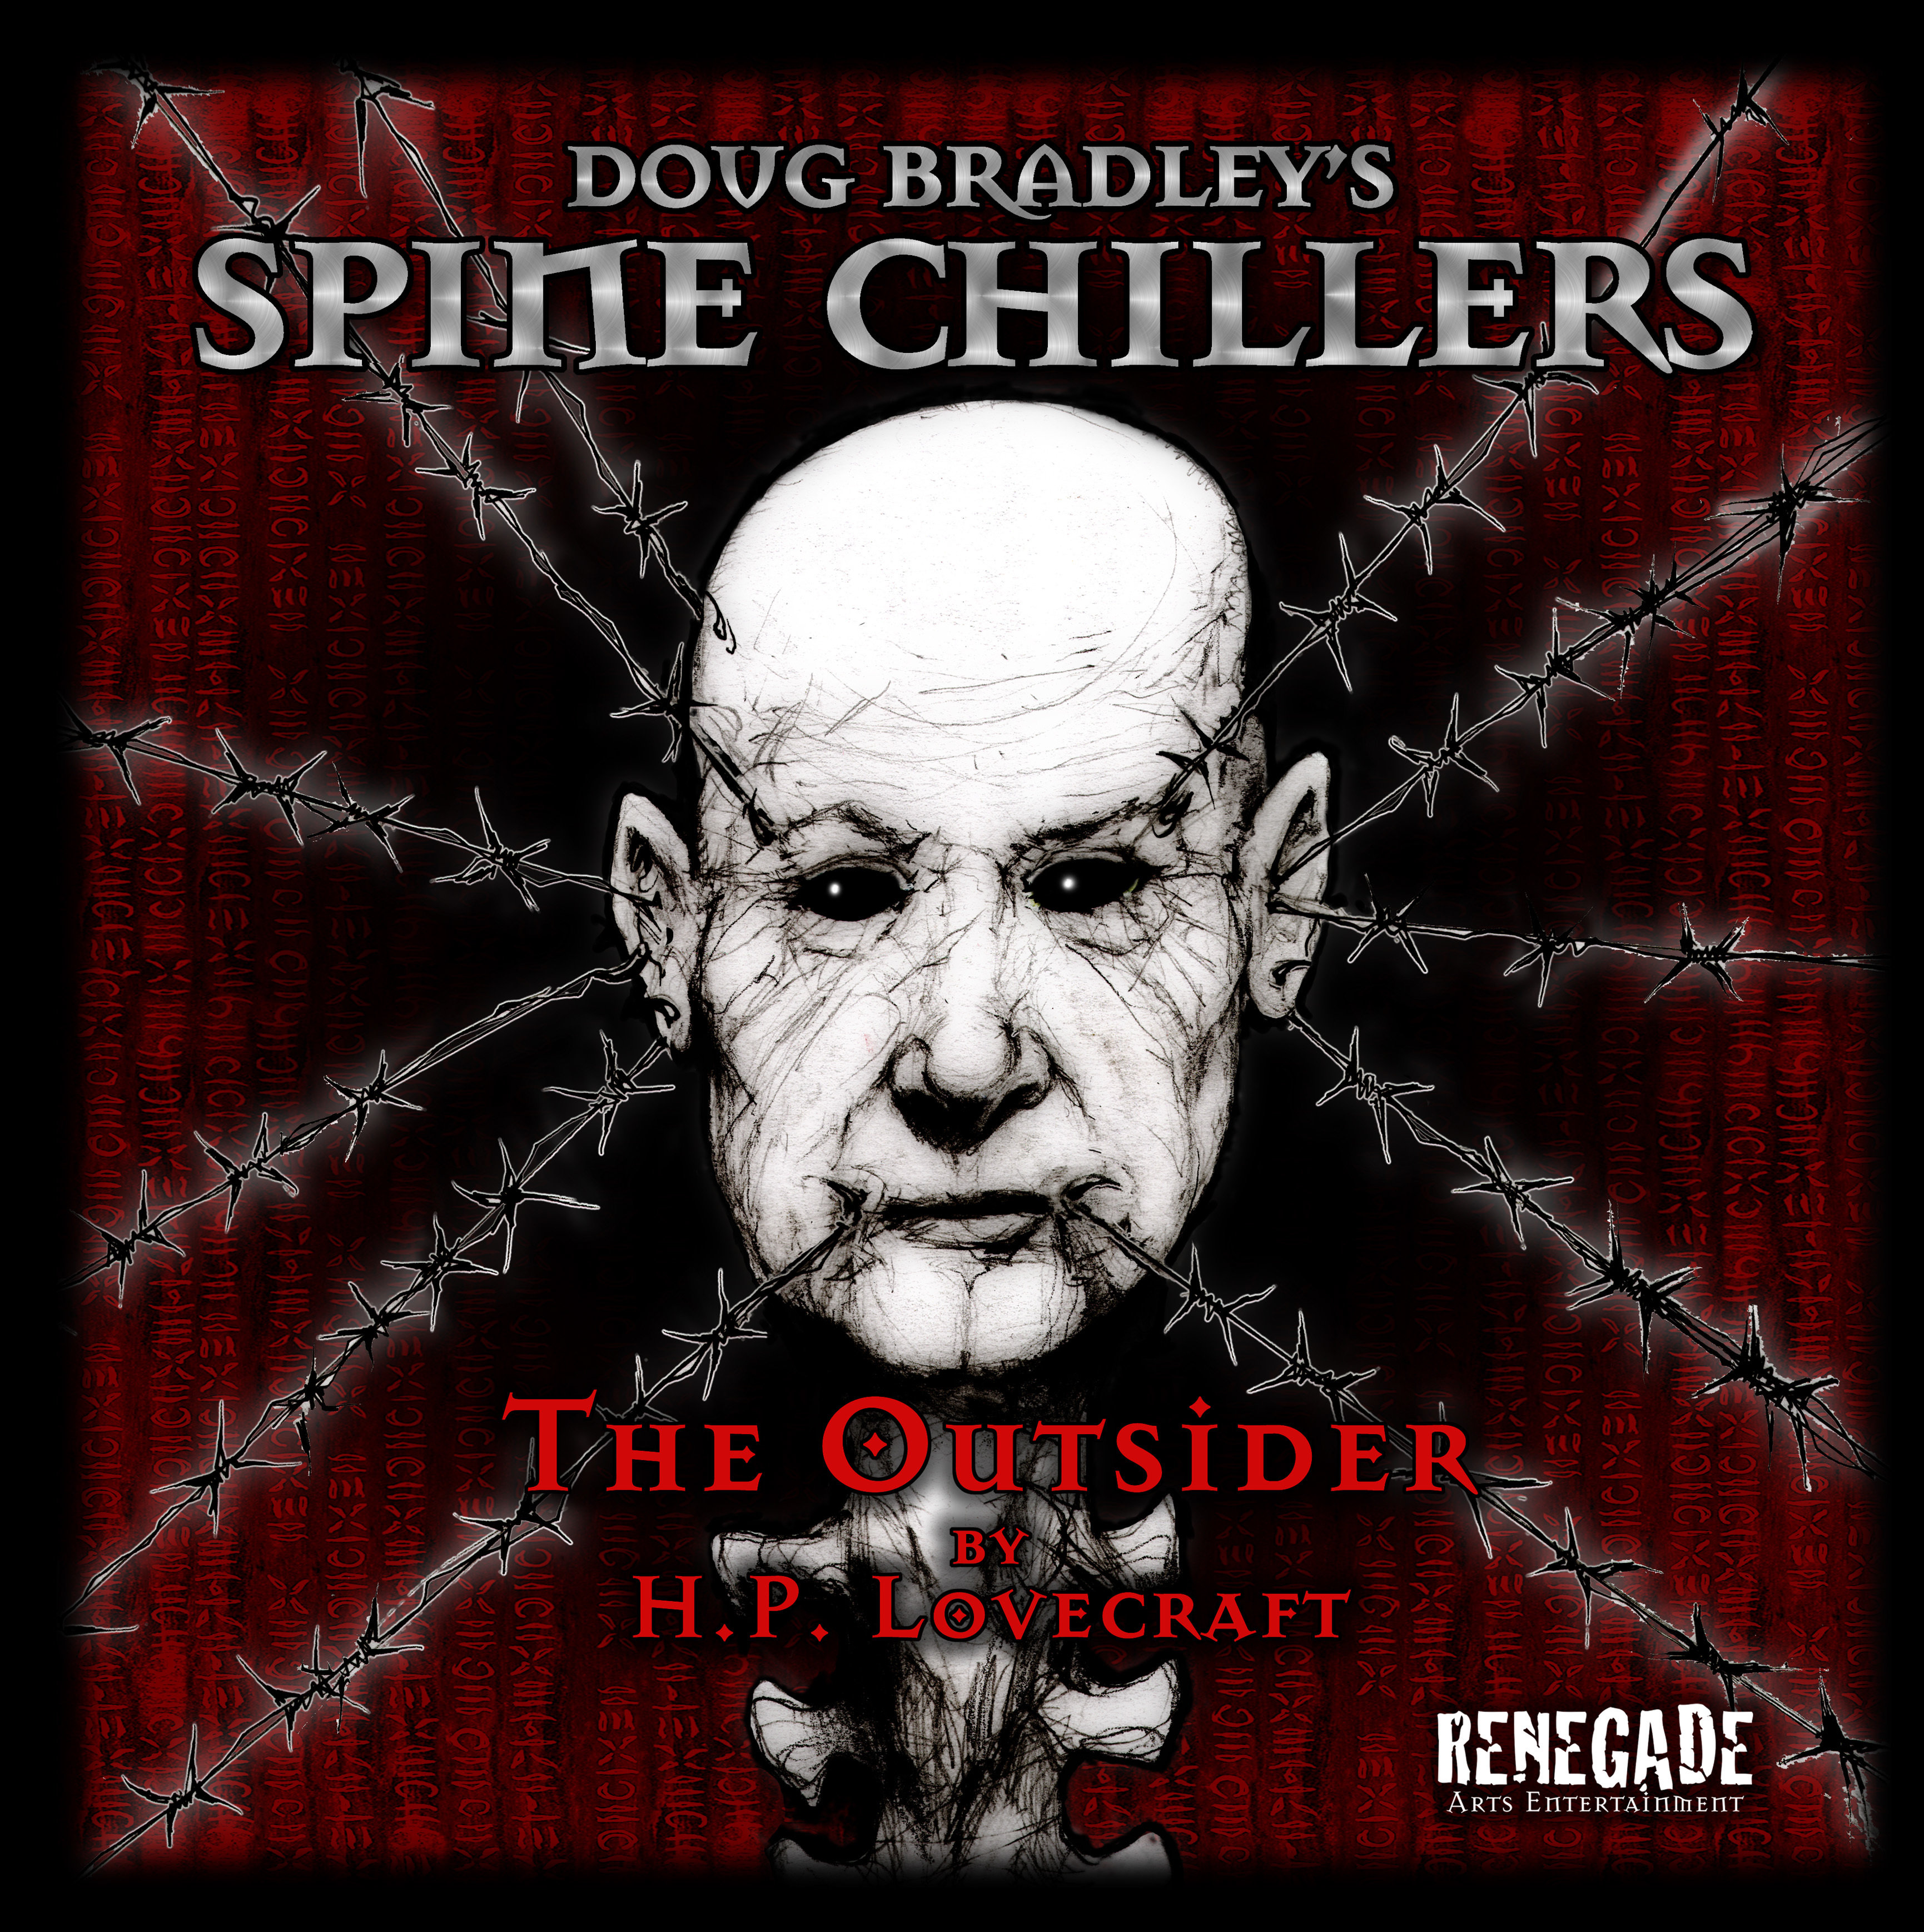 Spinechillers DVD: The Outsider by H. P. Lovecraft 00029